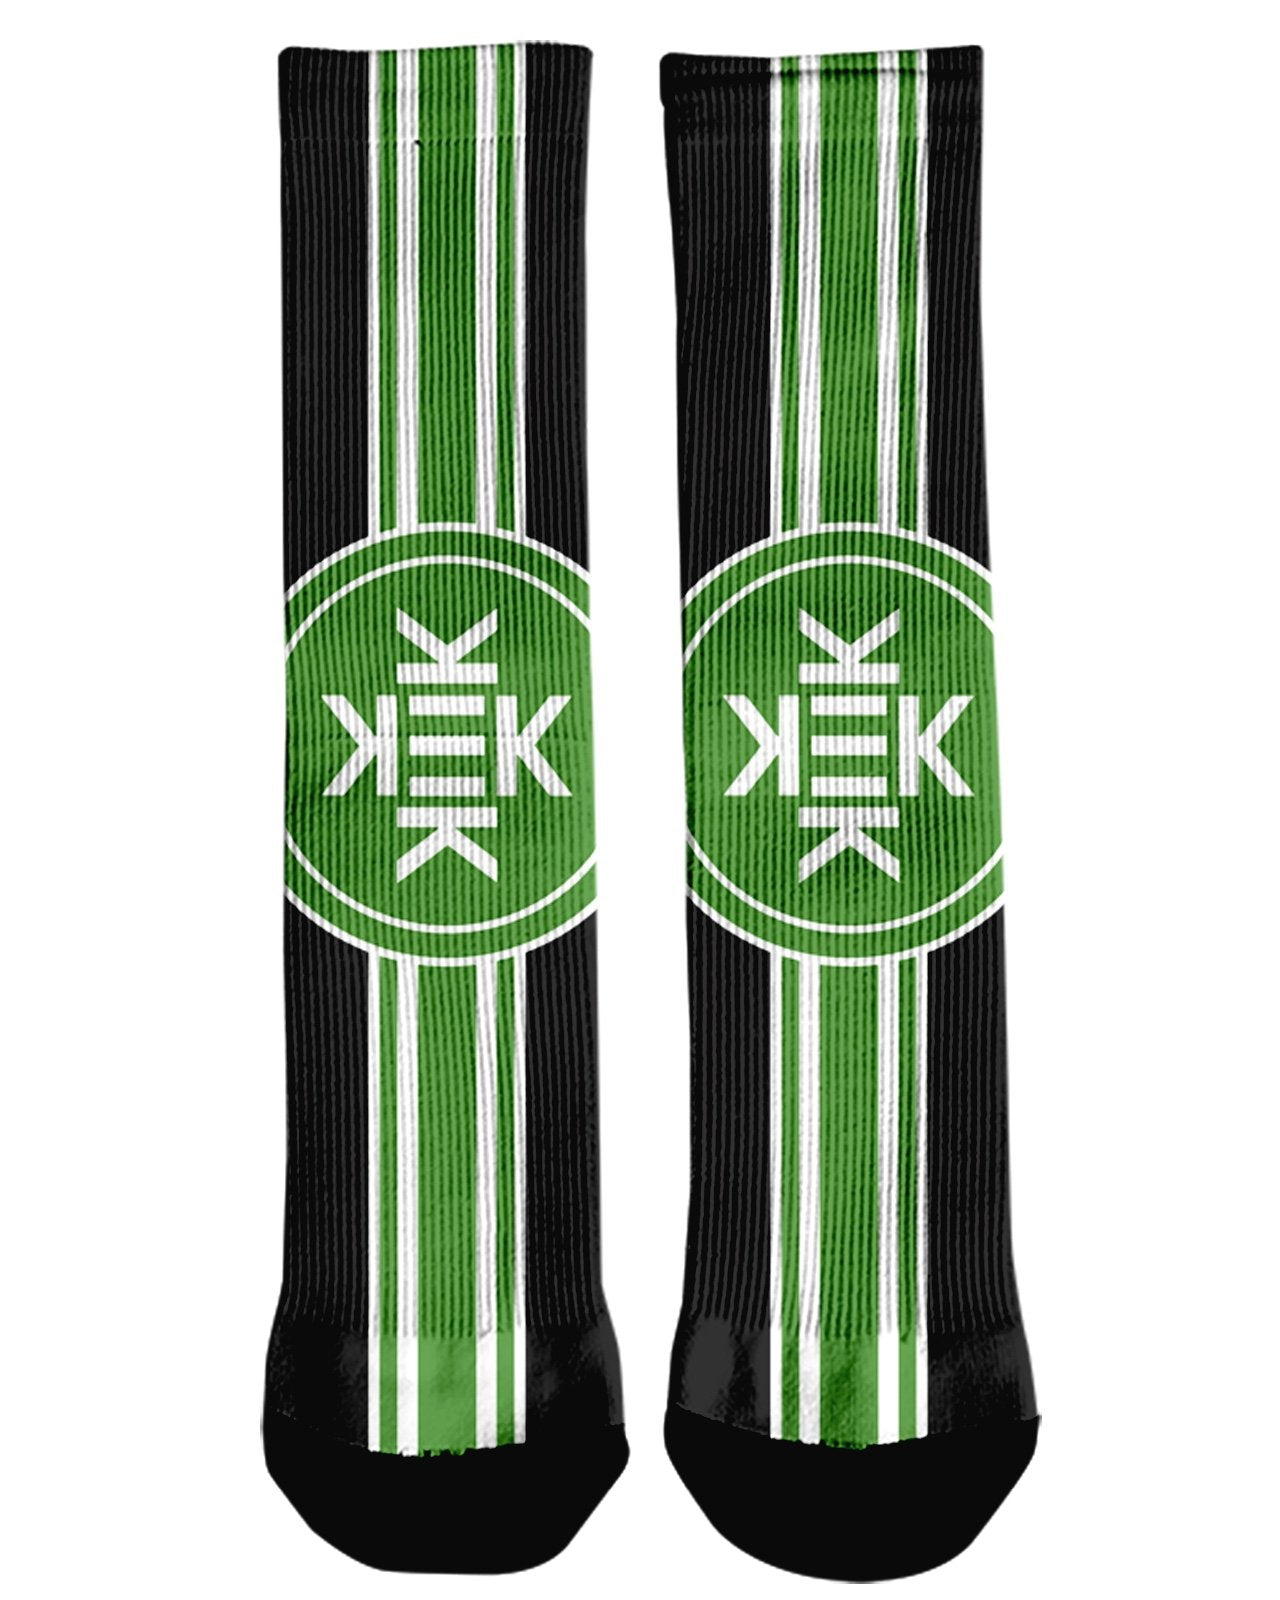 Republic of Kekistan Black Crew Socks